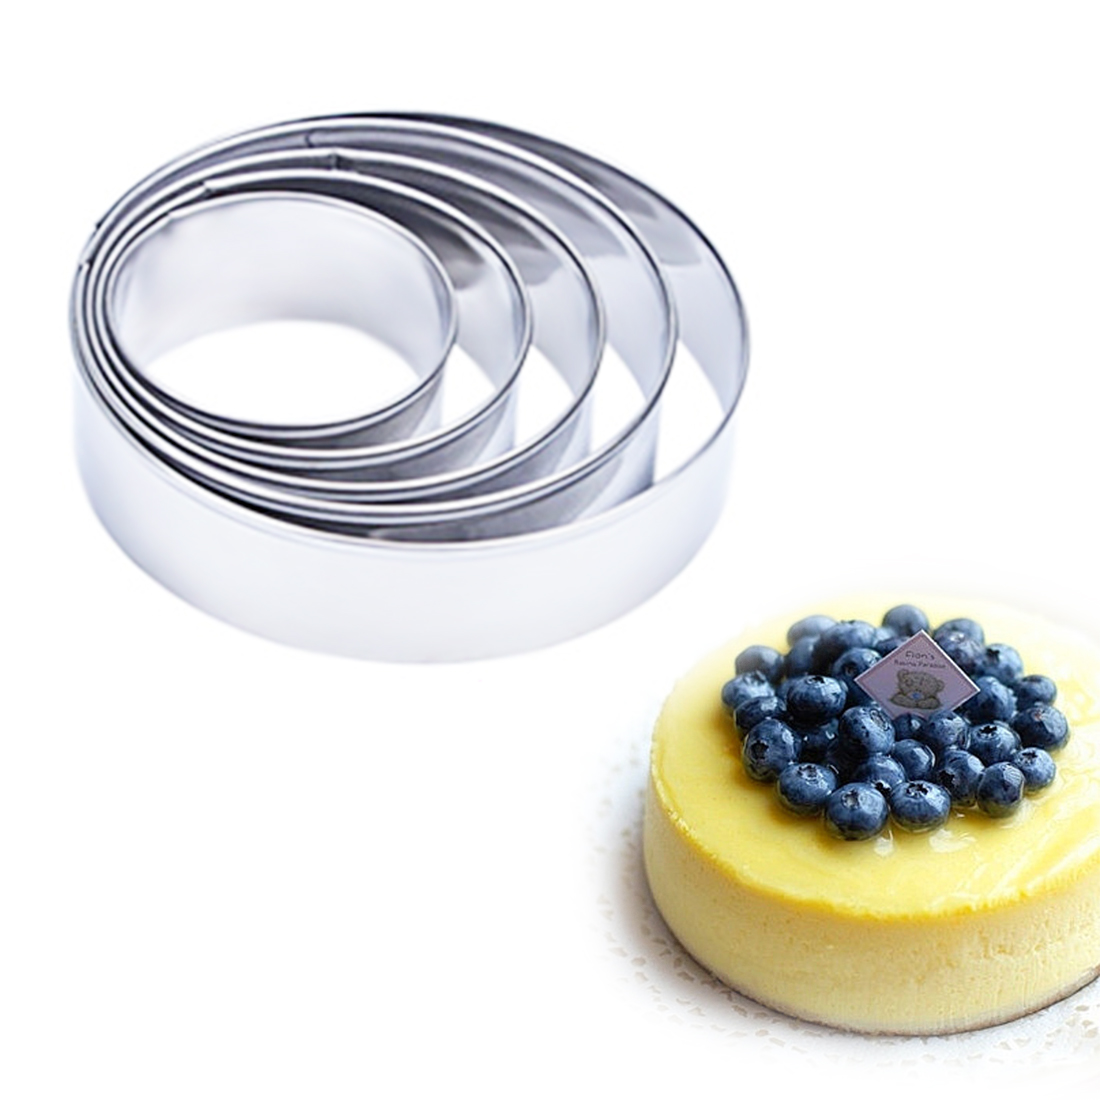 Home & Garden Amiable 5pcs/set Round Circle Shape Metal Cookie Cutter Kitchen Bakeware Birthday Fondant Cake Mold Chocolate Stencils Baking Tools Comfortable And Easy To Wear